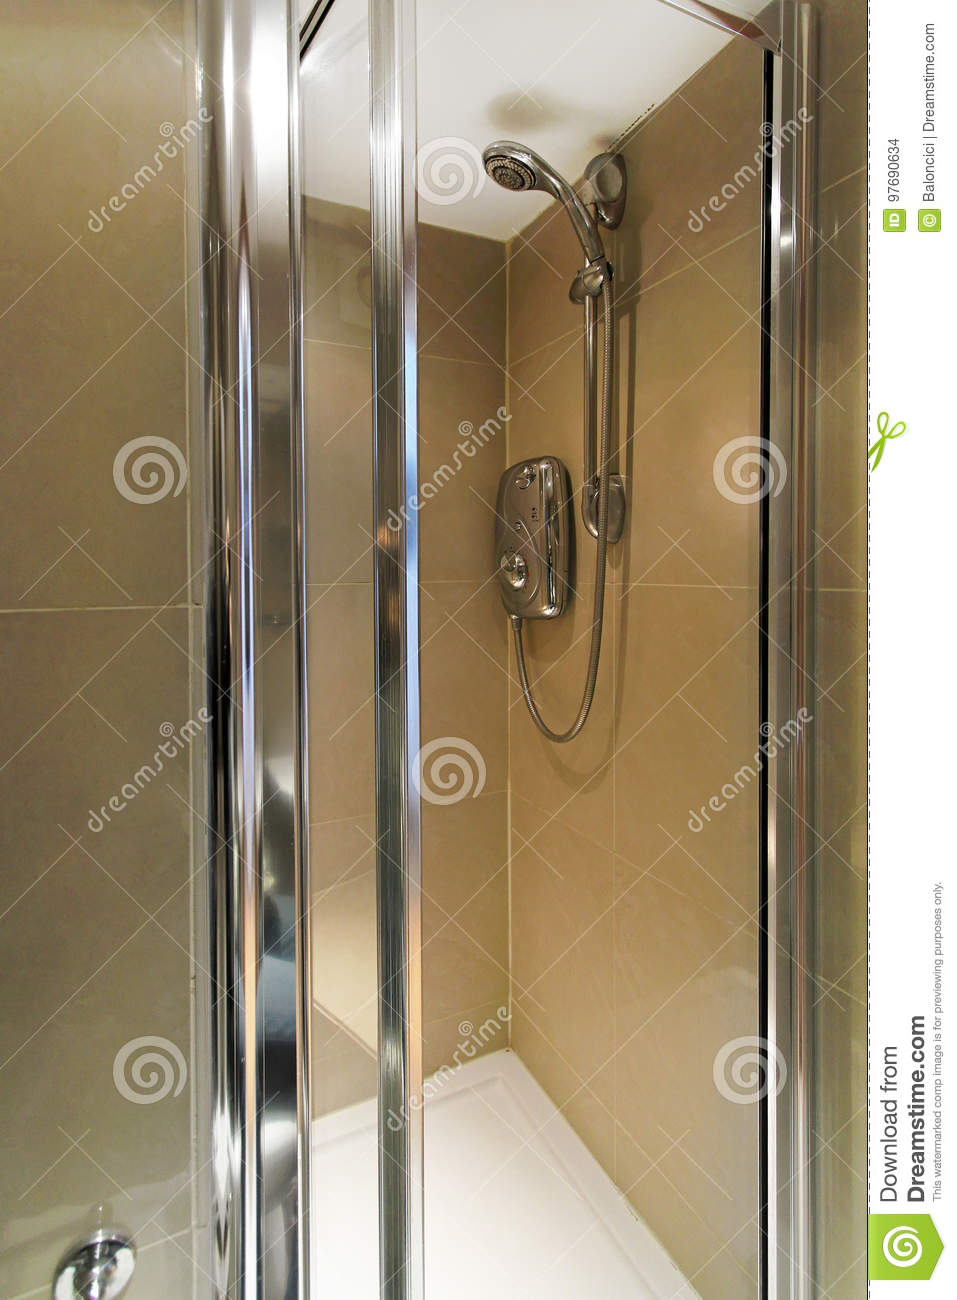 Shower interior stock photo. Image of small, faucet, home - 97690634